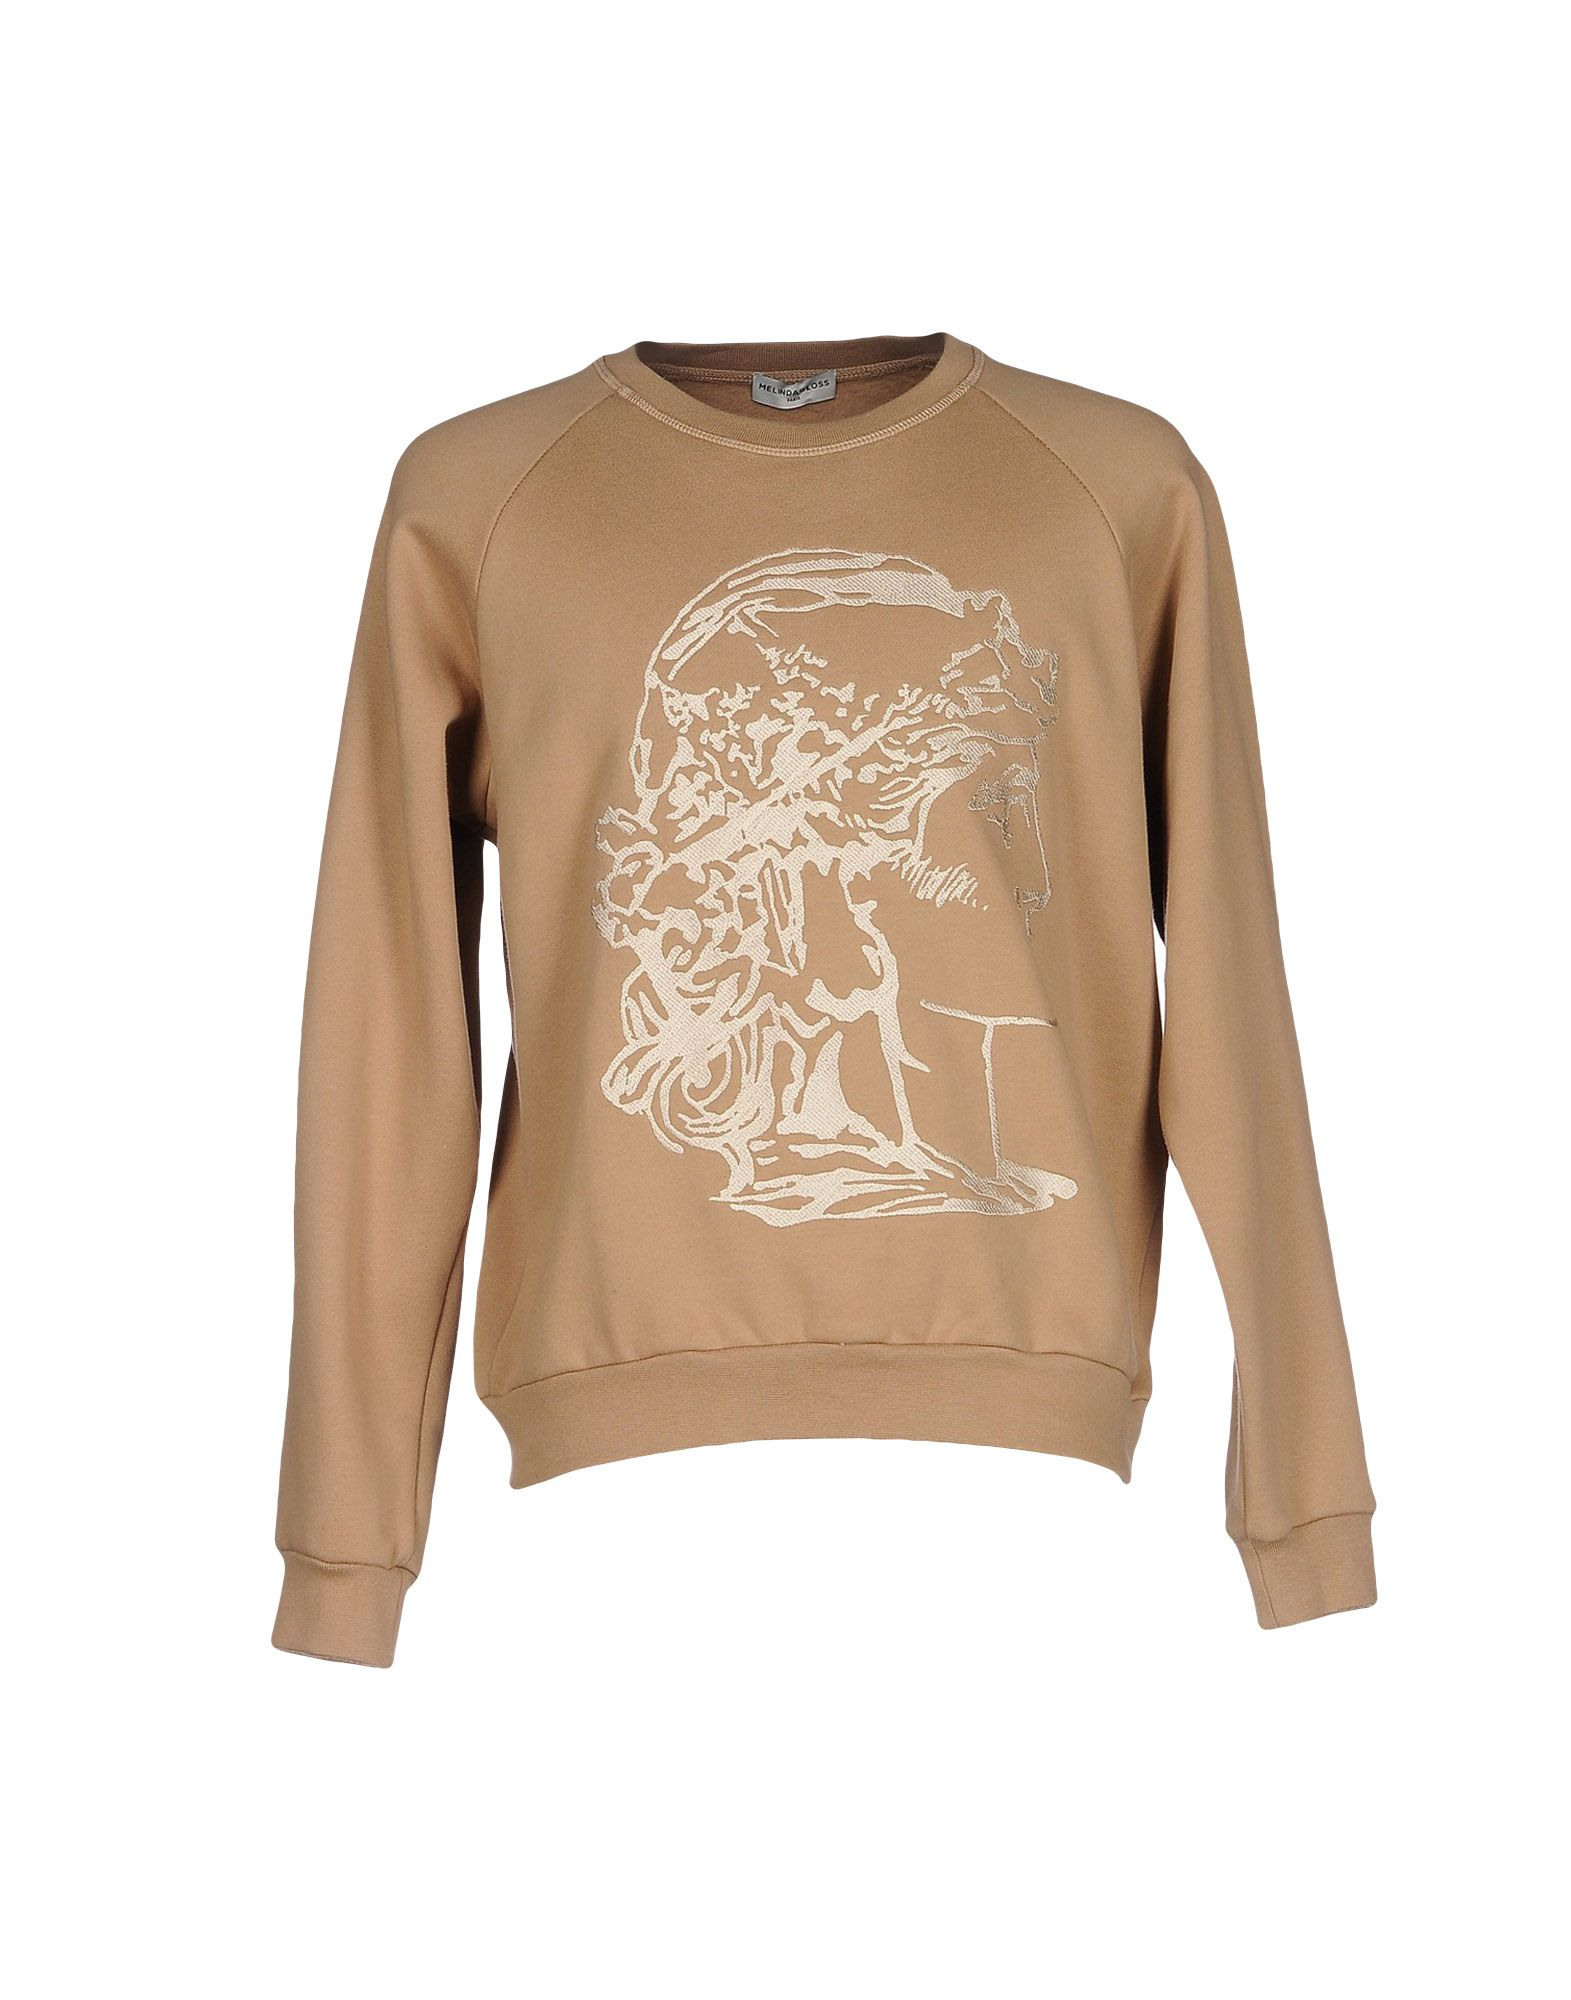 Lyst - Éditions mr Sweatshirt in Natural for Men